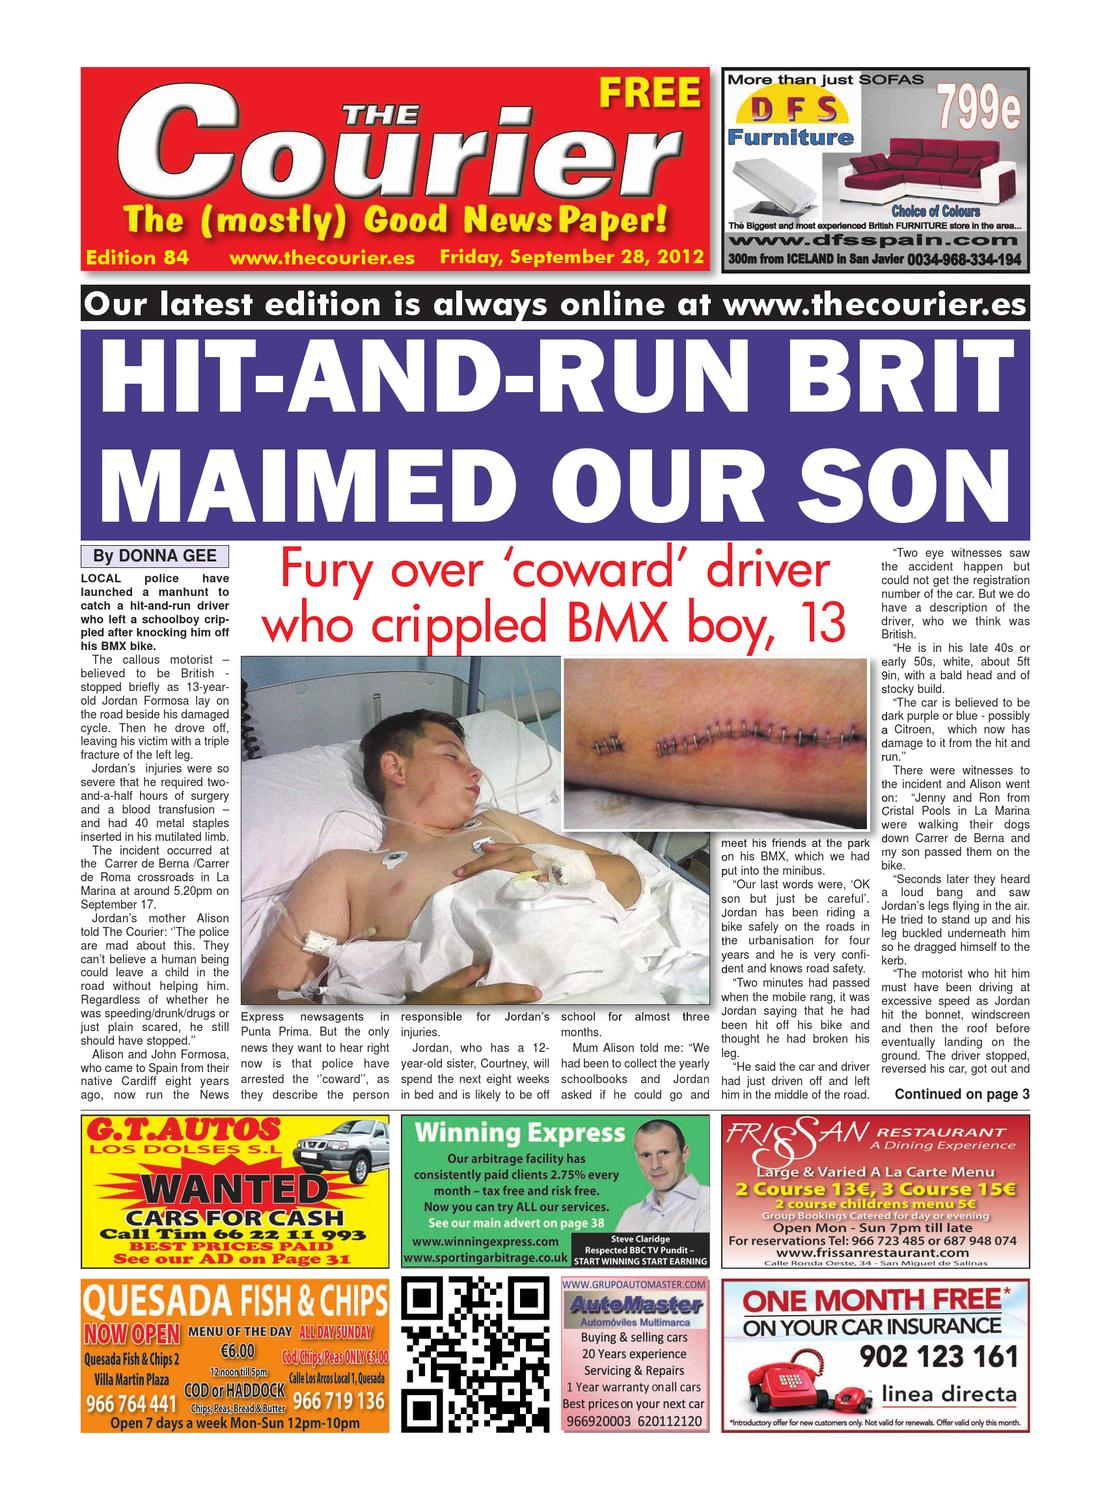 The Courier Week 84 By The Courier Newspaper Issuu